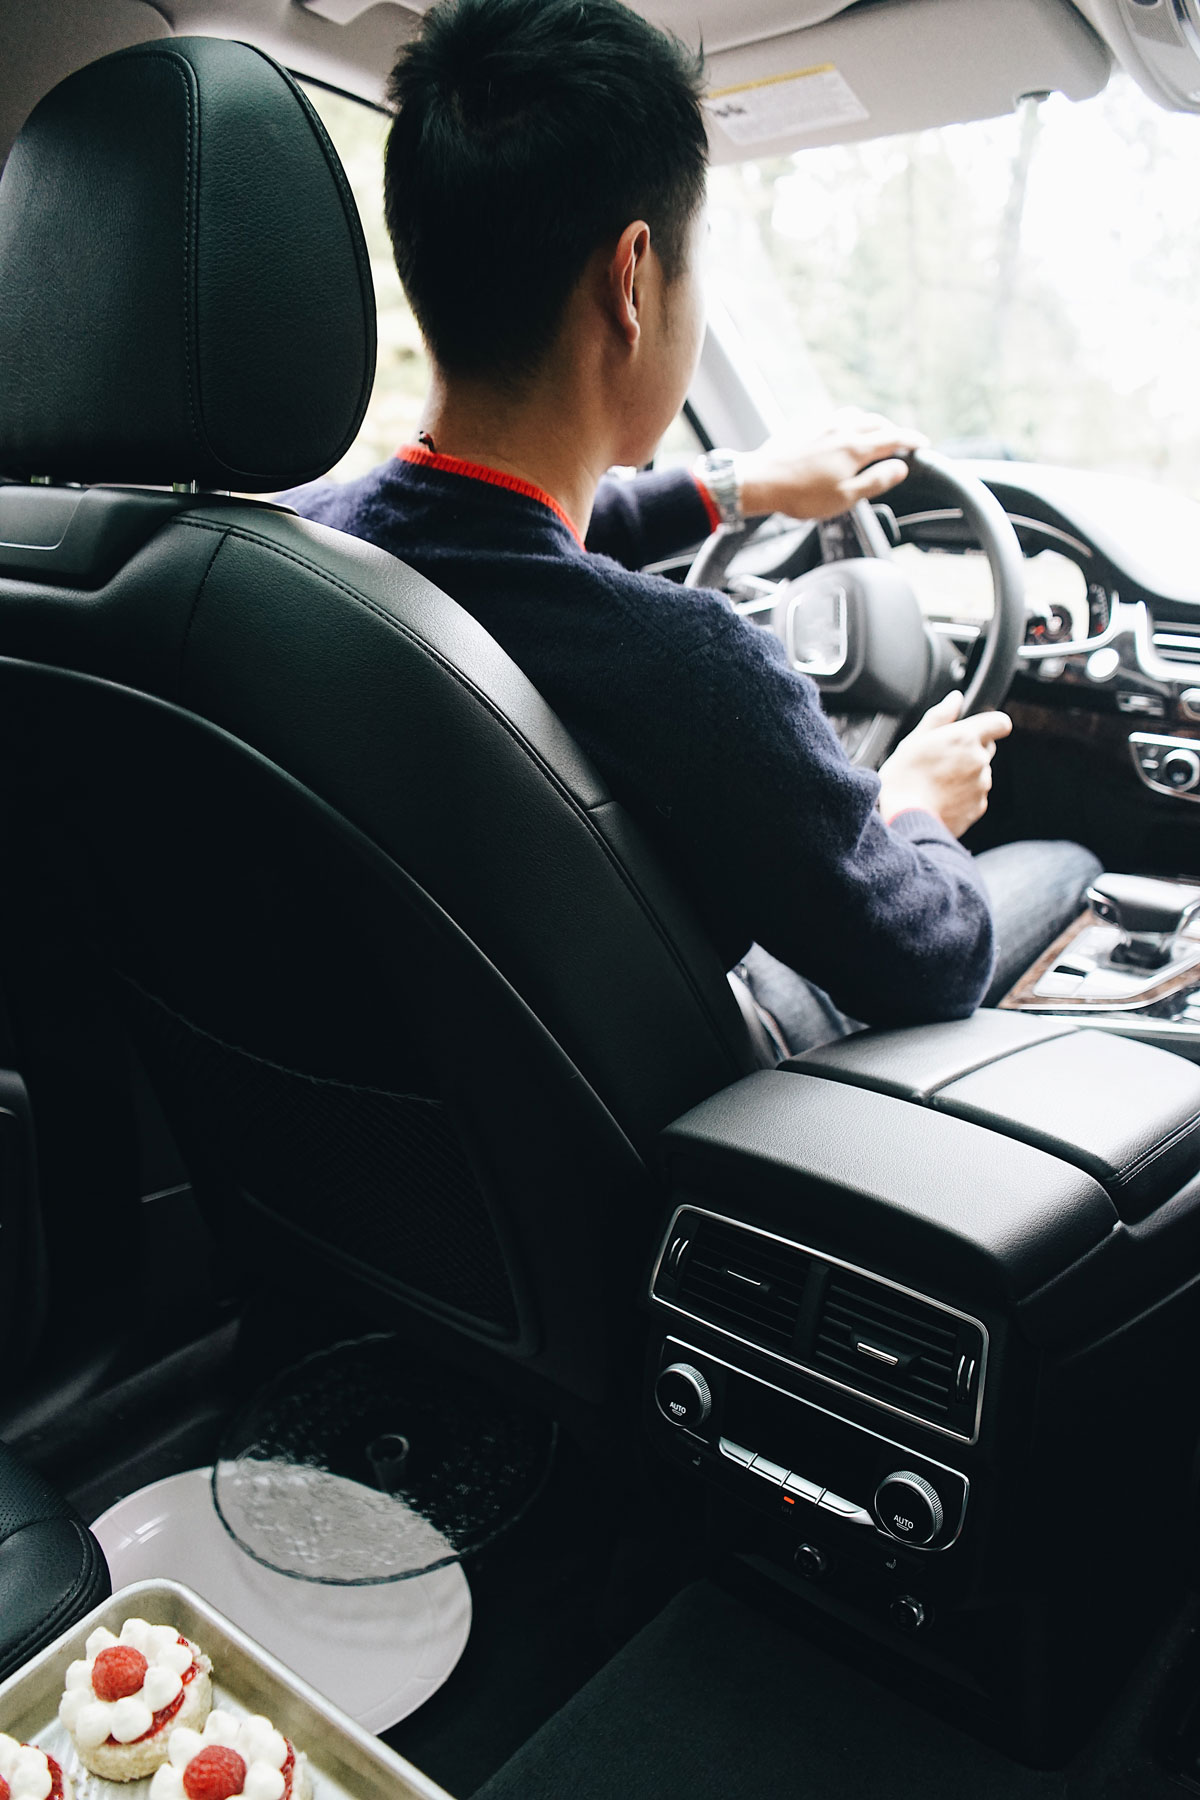 herbakinglab-open-faced-victoria-sandwich-driver-on-road